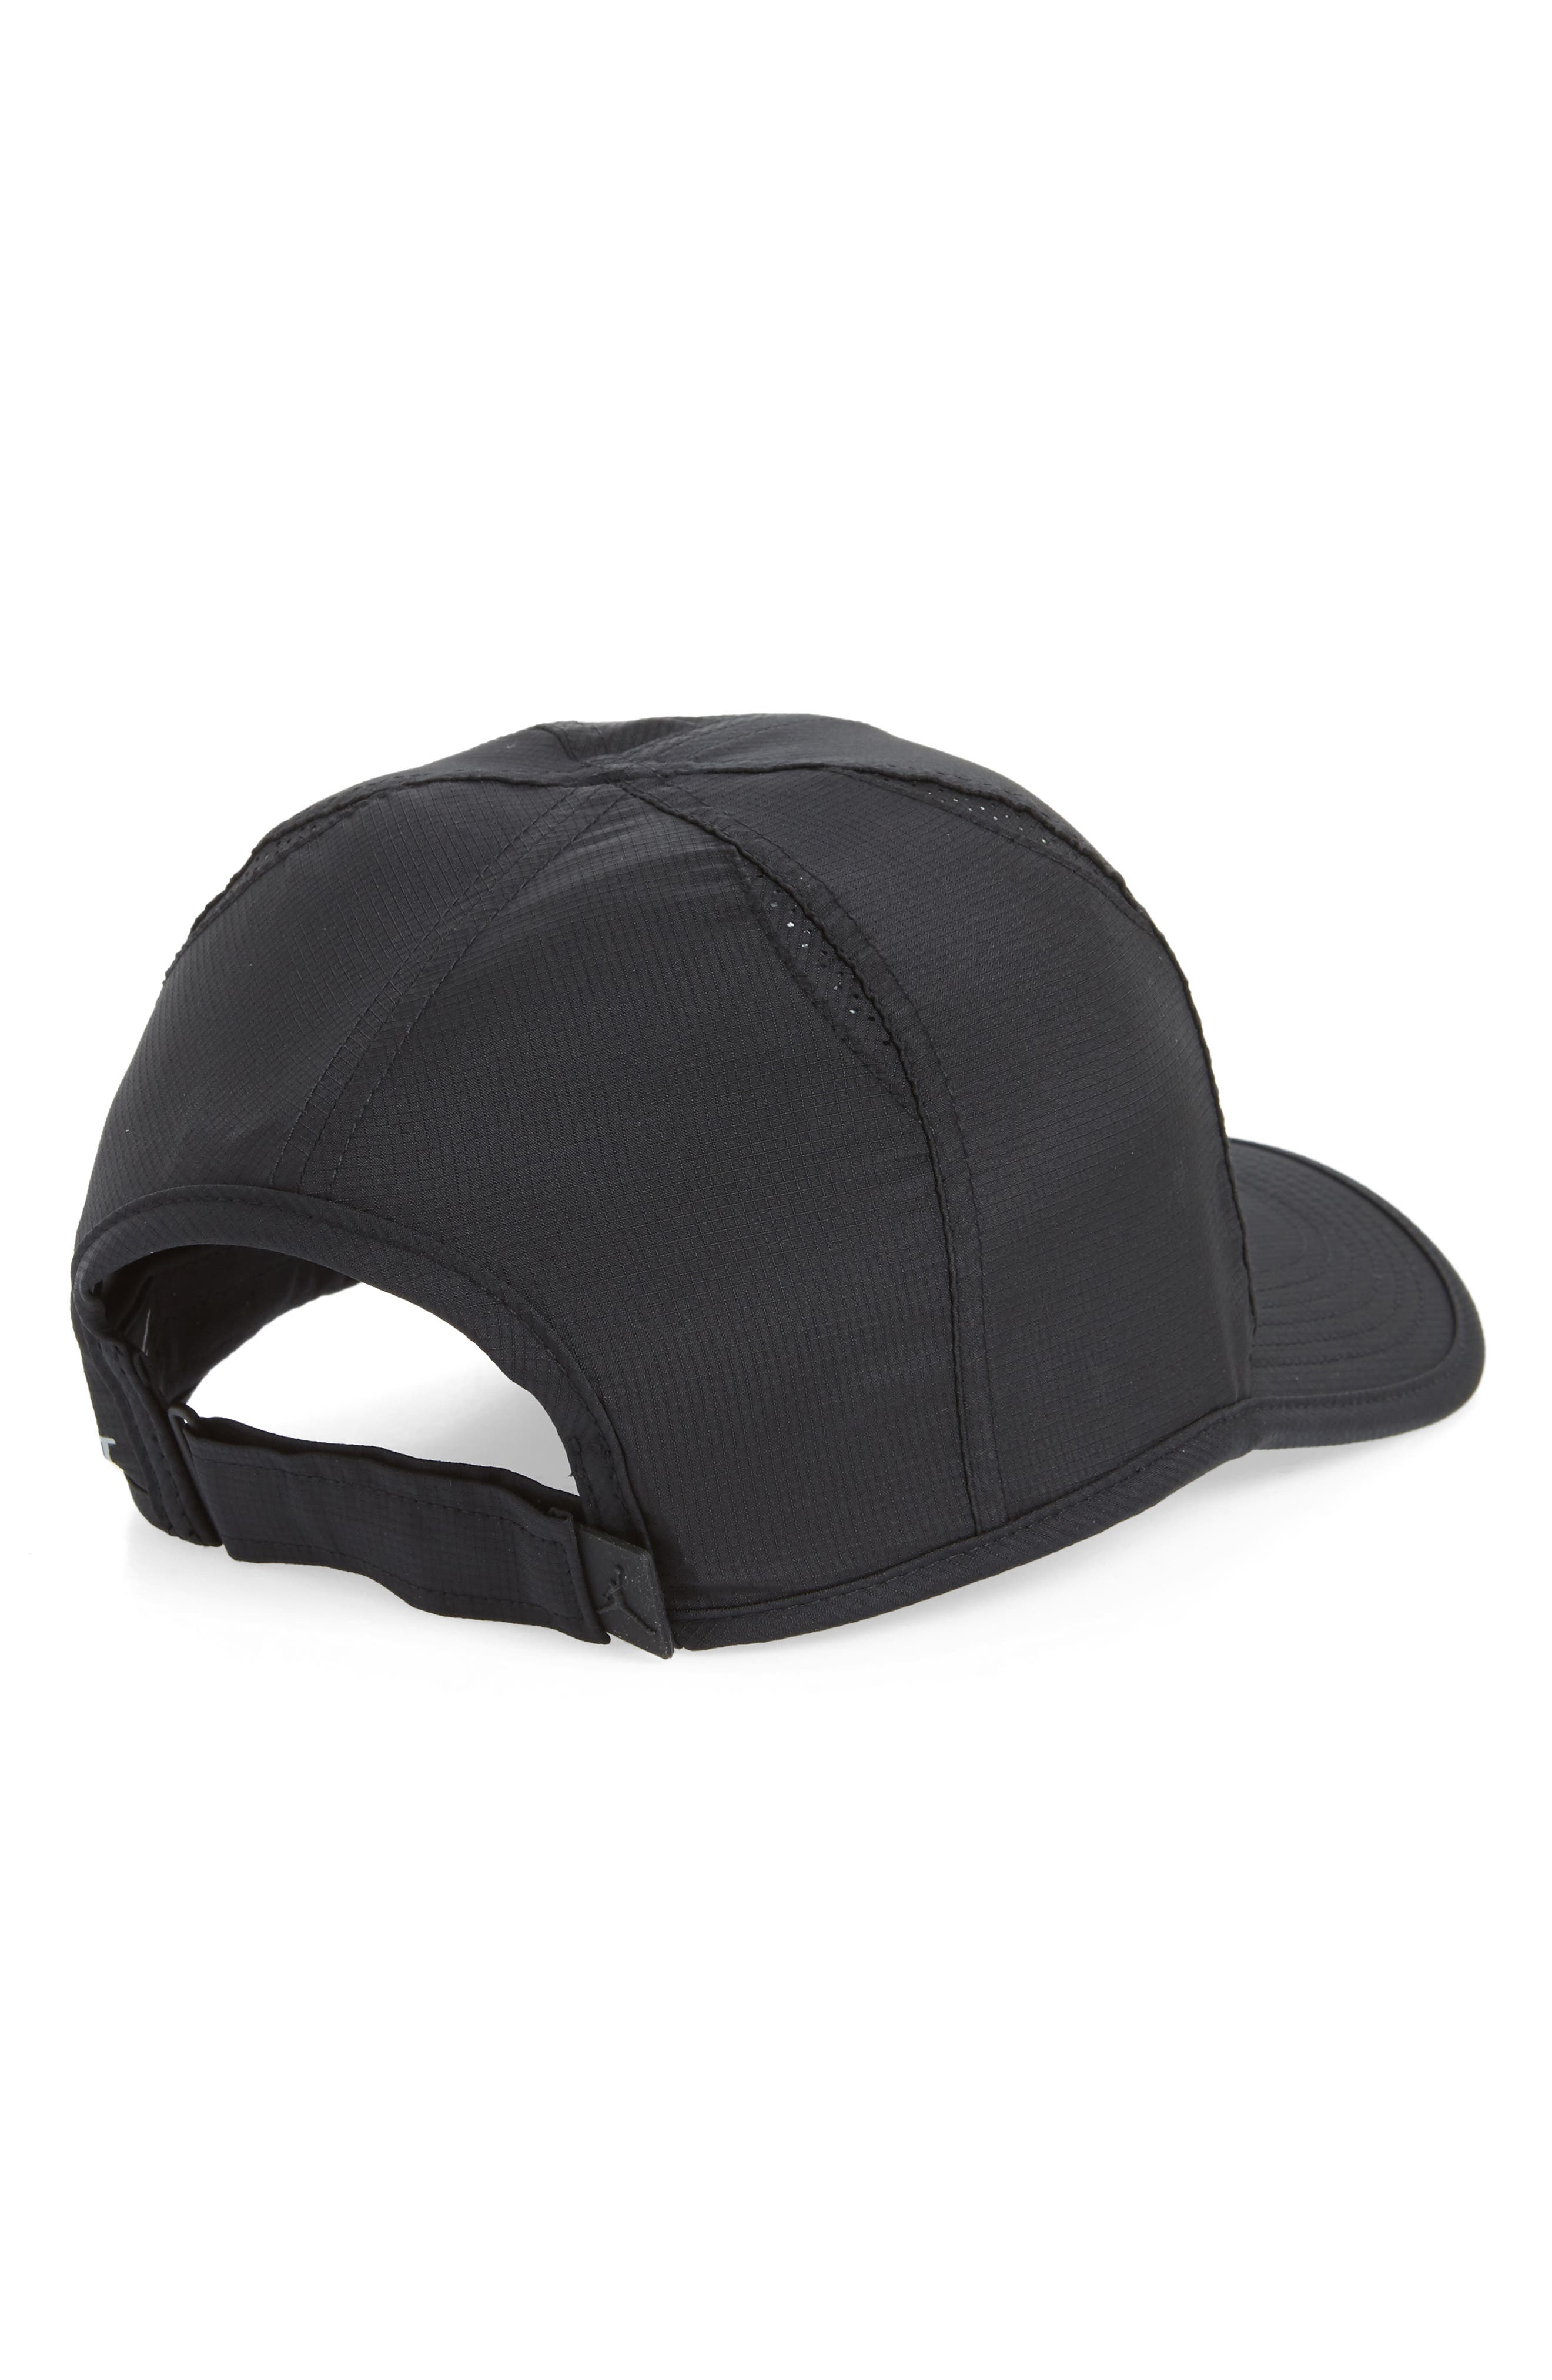 Jordan Featherlight Baseball Cap,                             Alternate thumbnail 2, color,                             Black/ Black